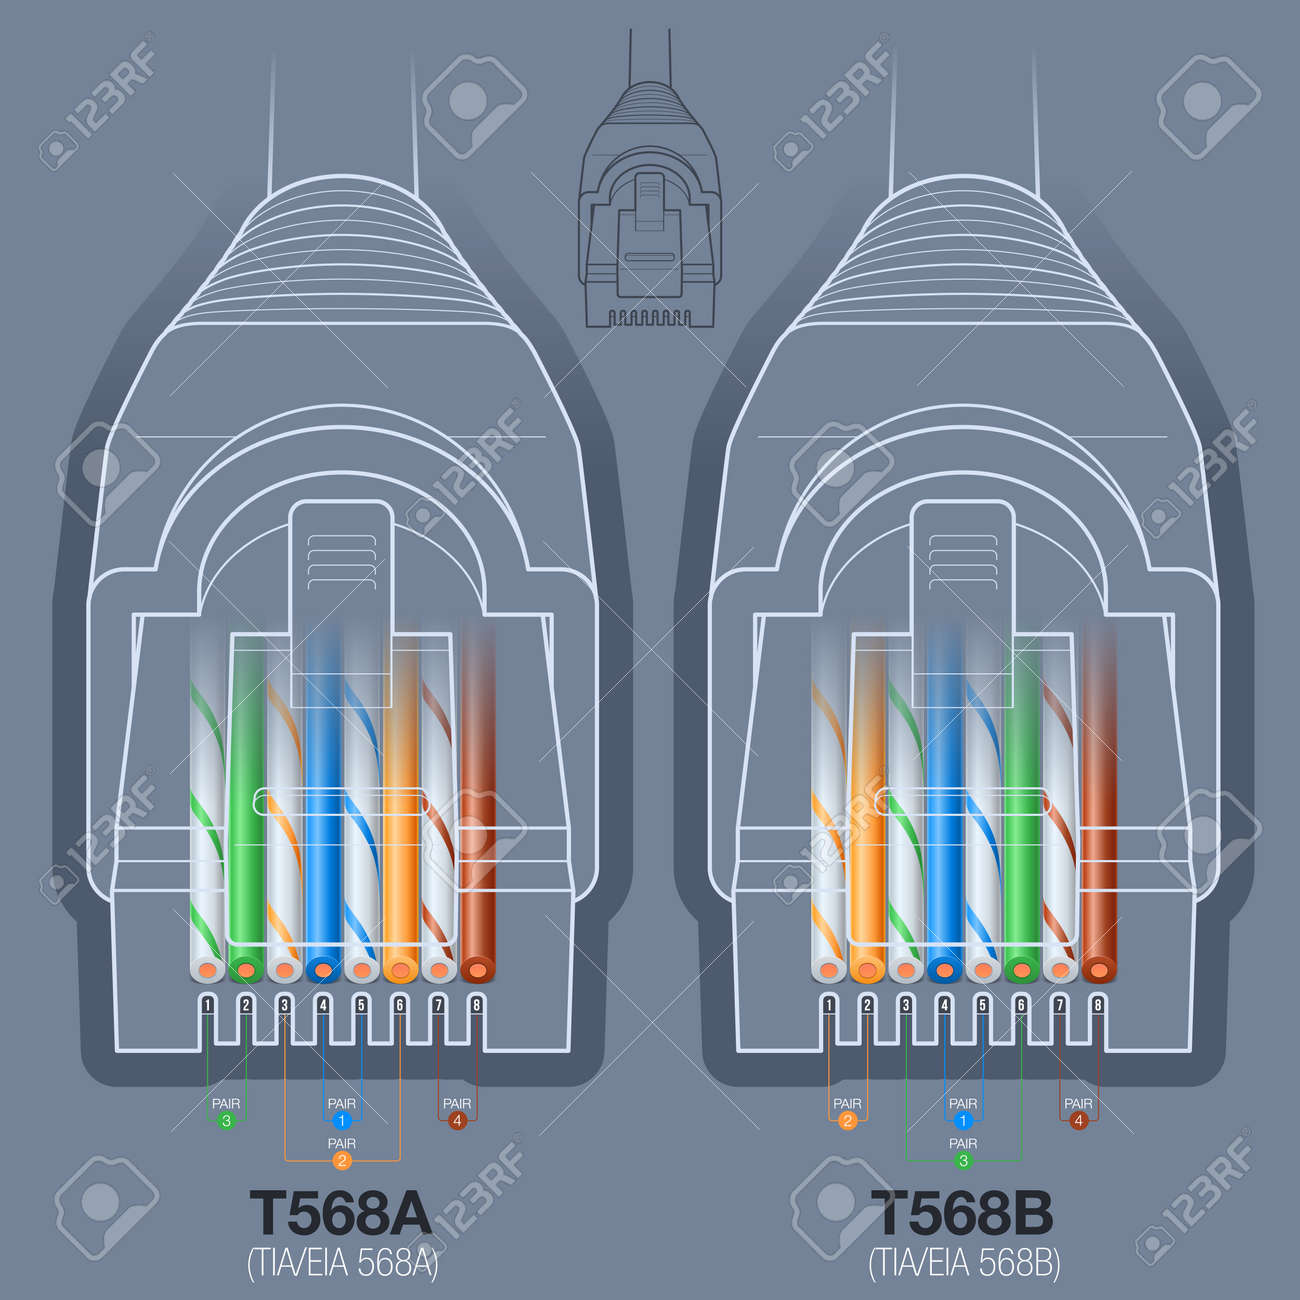 RJ45 Network Cable Connector T568A T568B Wiring Diagram Royalty – Network Wiring Diagram Rj45